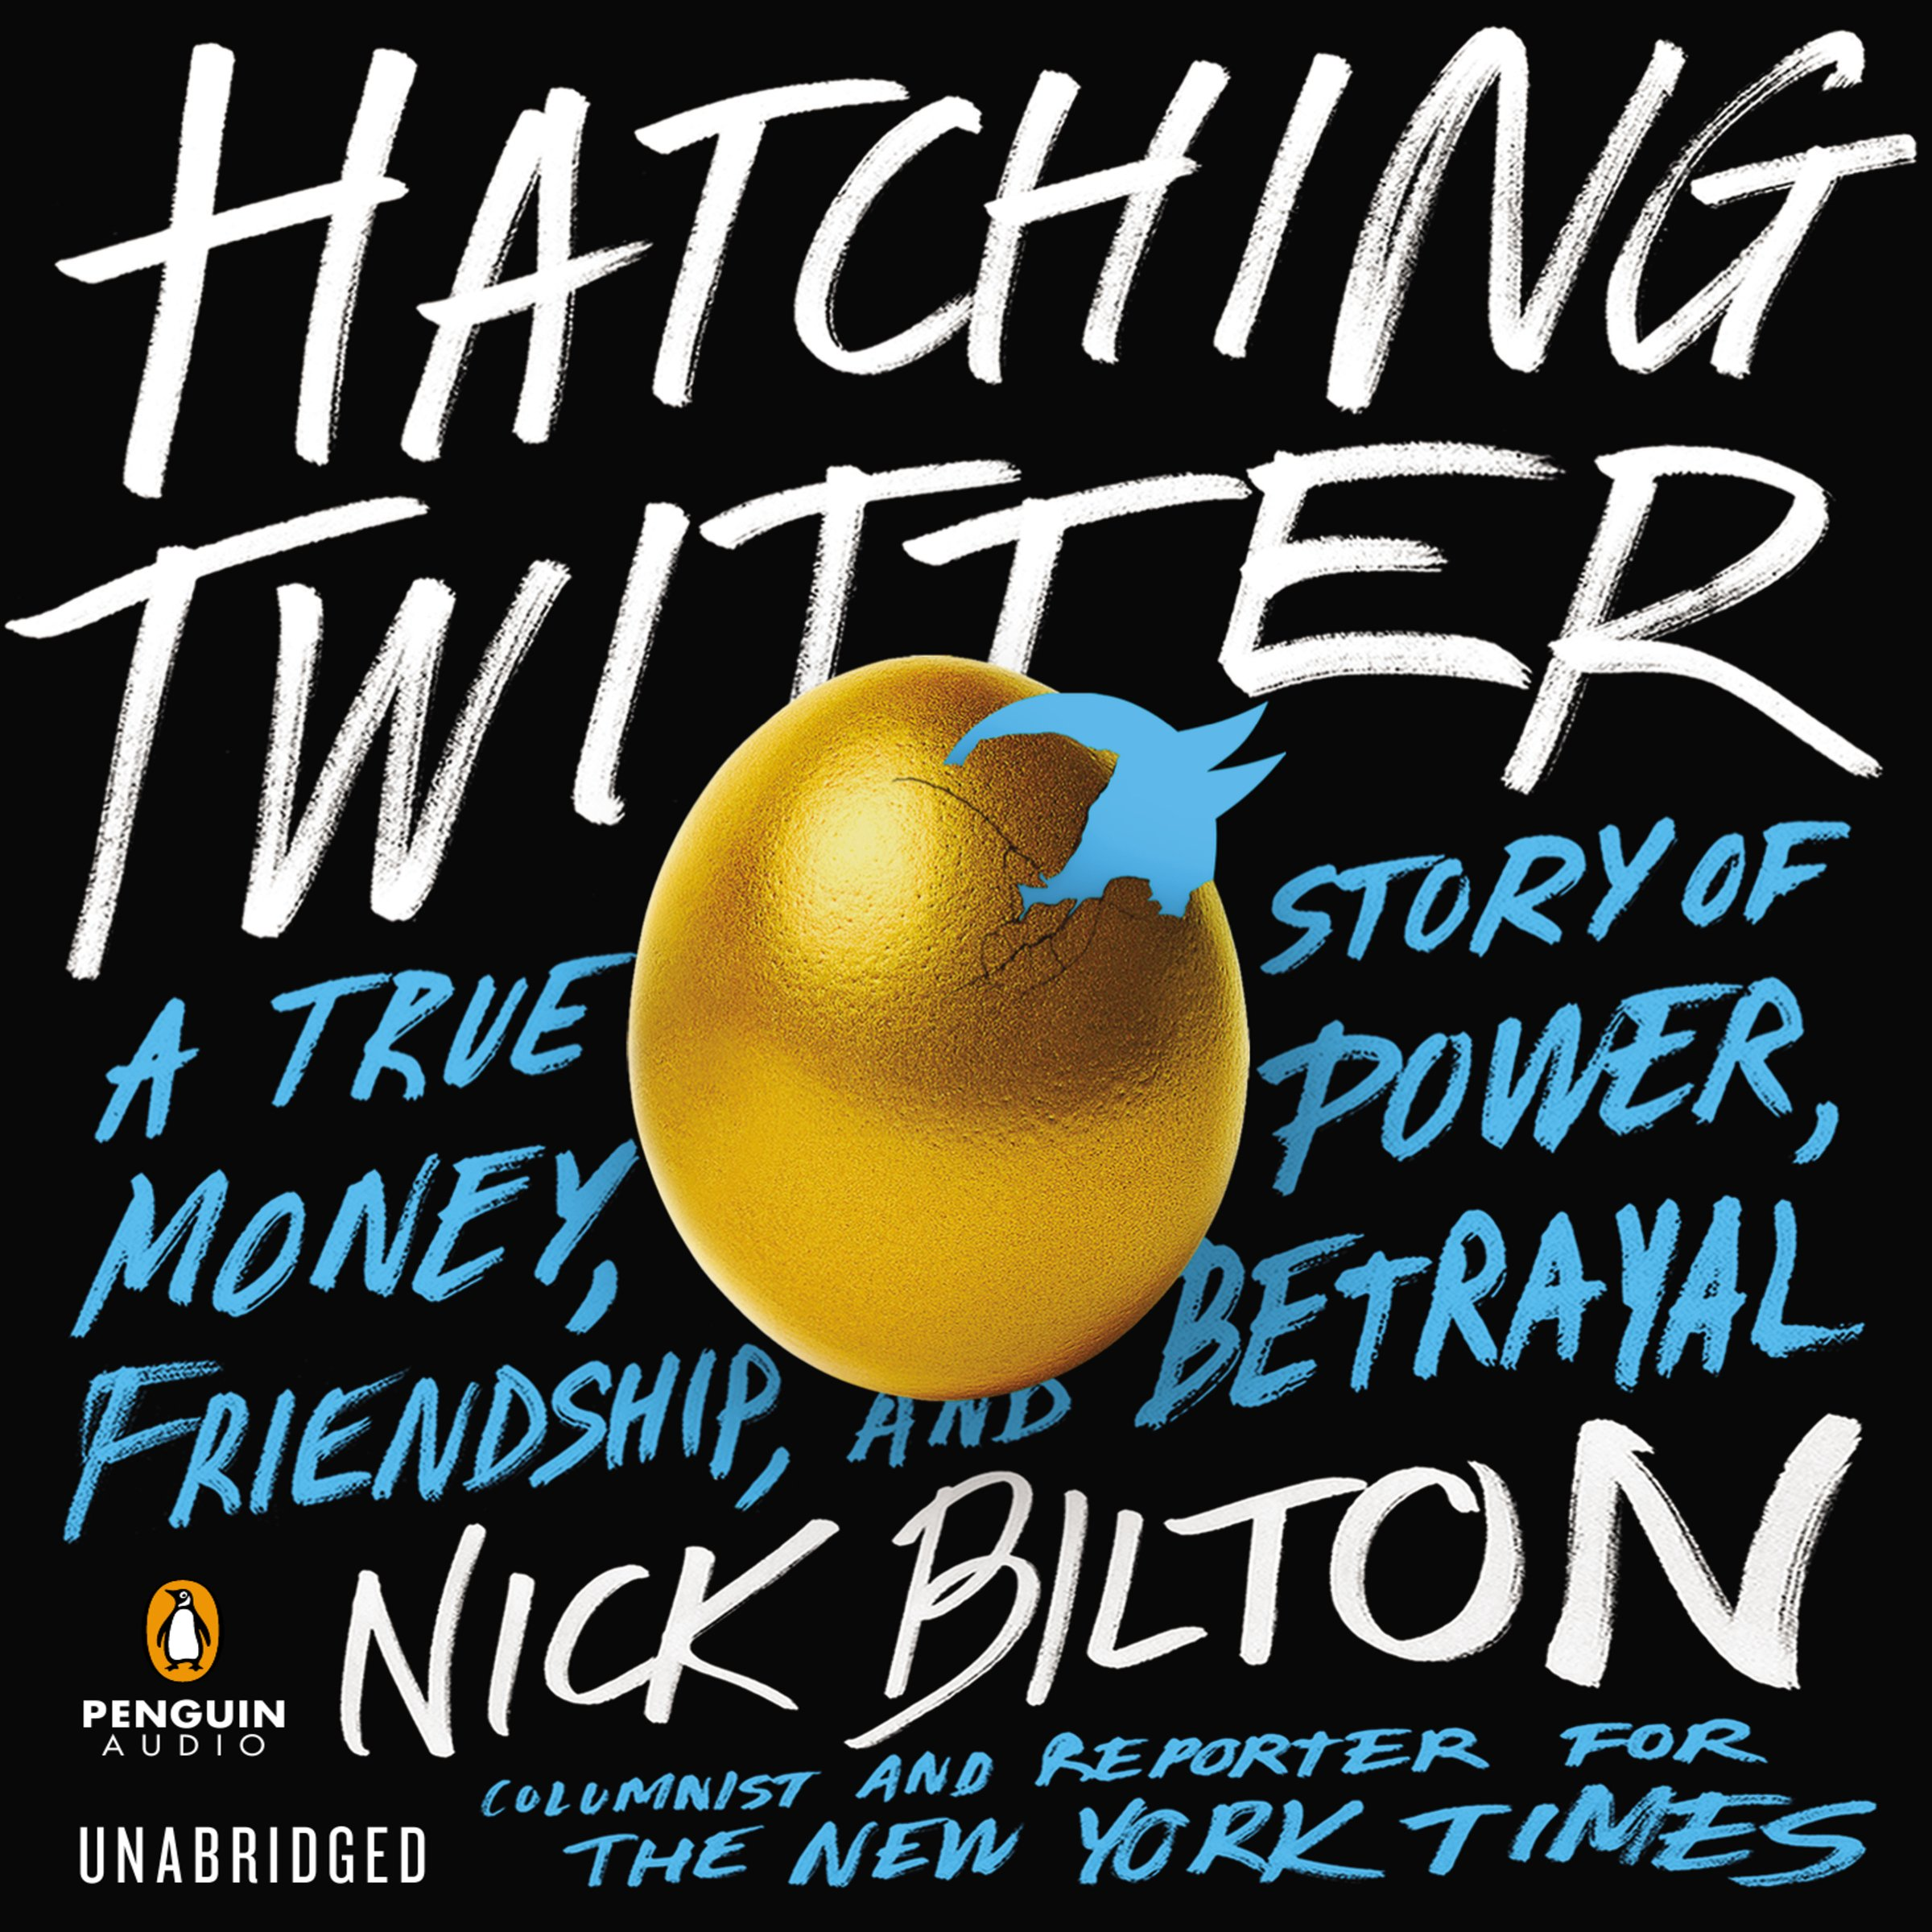 Hatching Twitter: A True Story of Money, Power, Friendship, and Betrayal - Nick Bilton - quotes, rating, reviews, where to buy